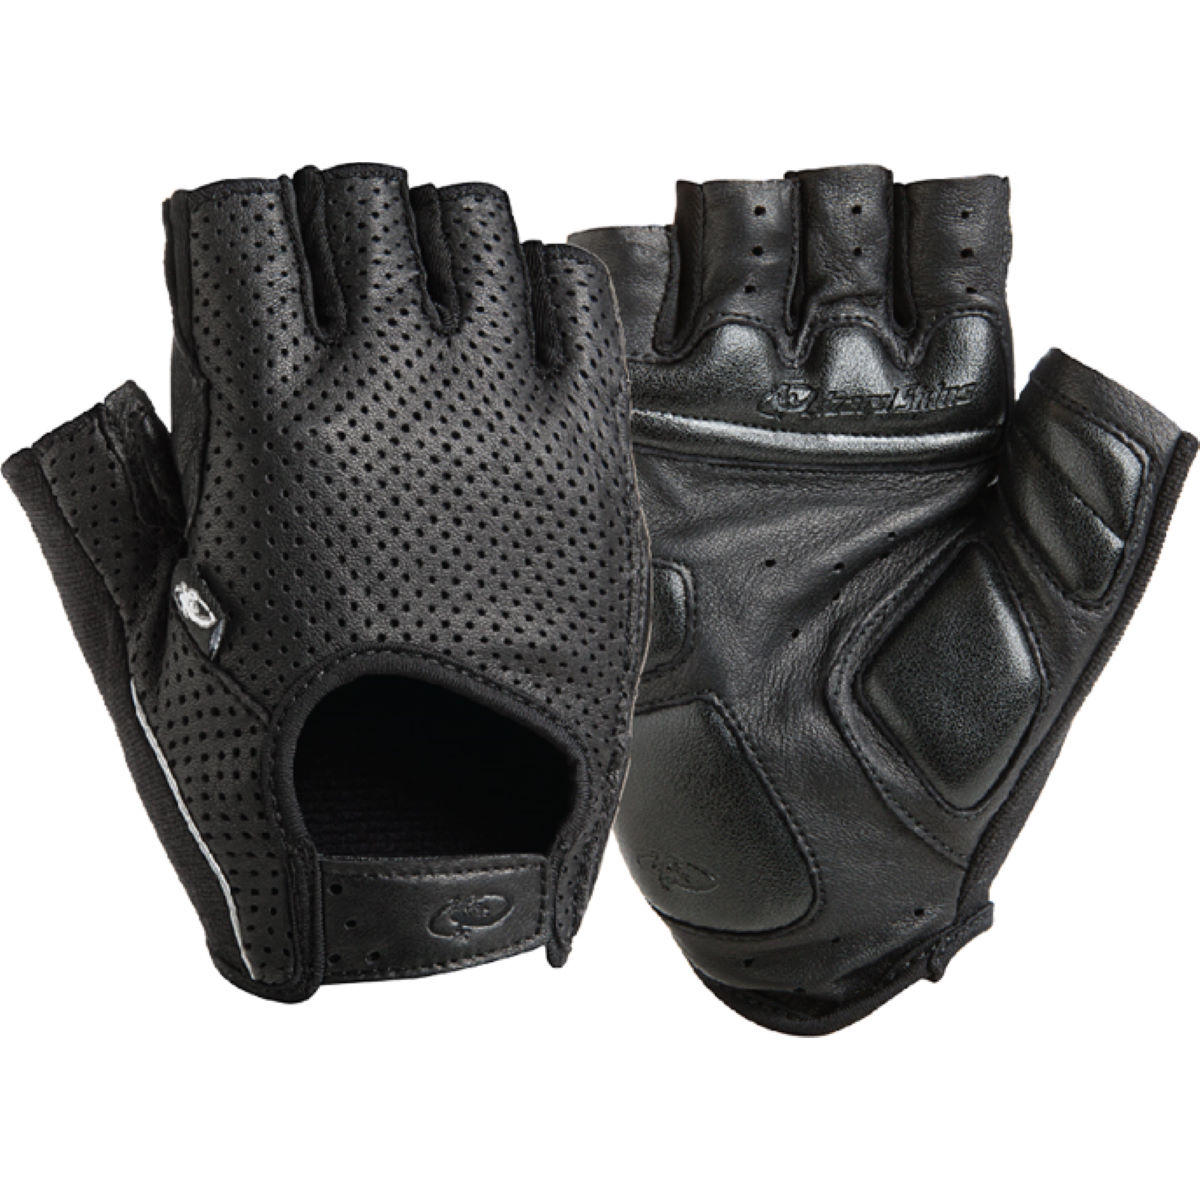 Lizard Skins La Sal 1.0 Short Finger Gloves